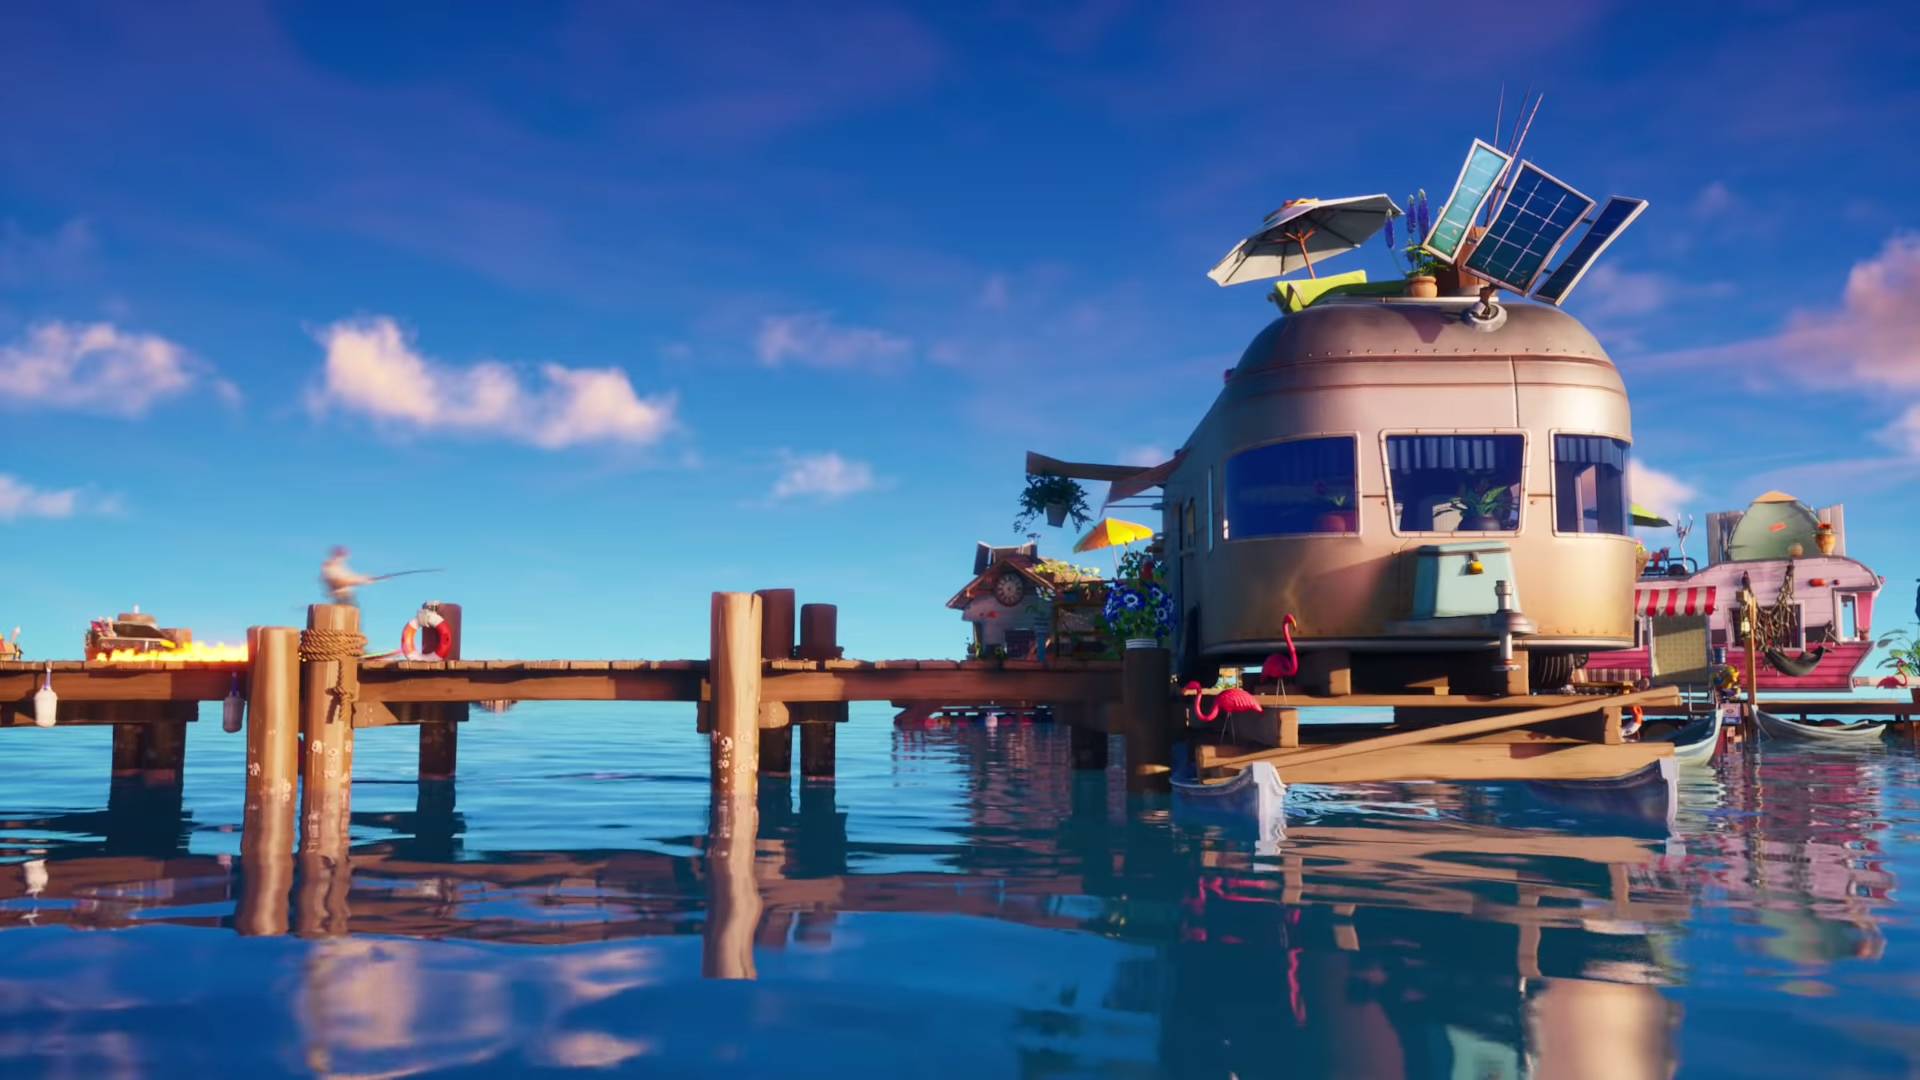 A look at the new flooded Fortnite map, with a trailer seen at the end of a wooden pier.